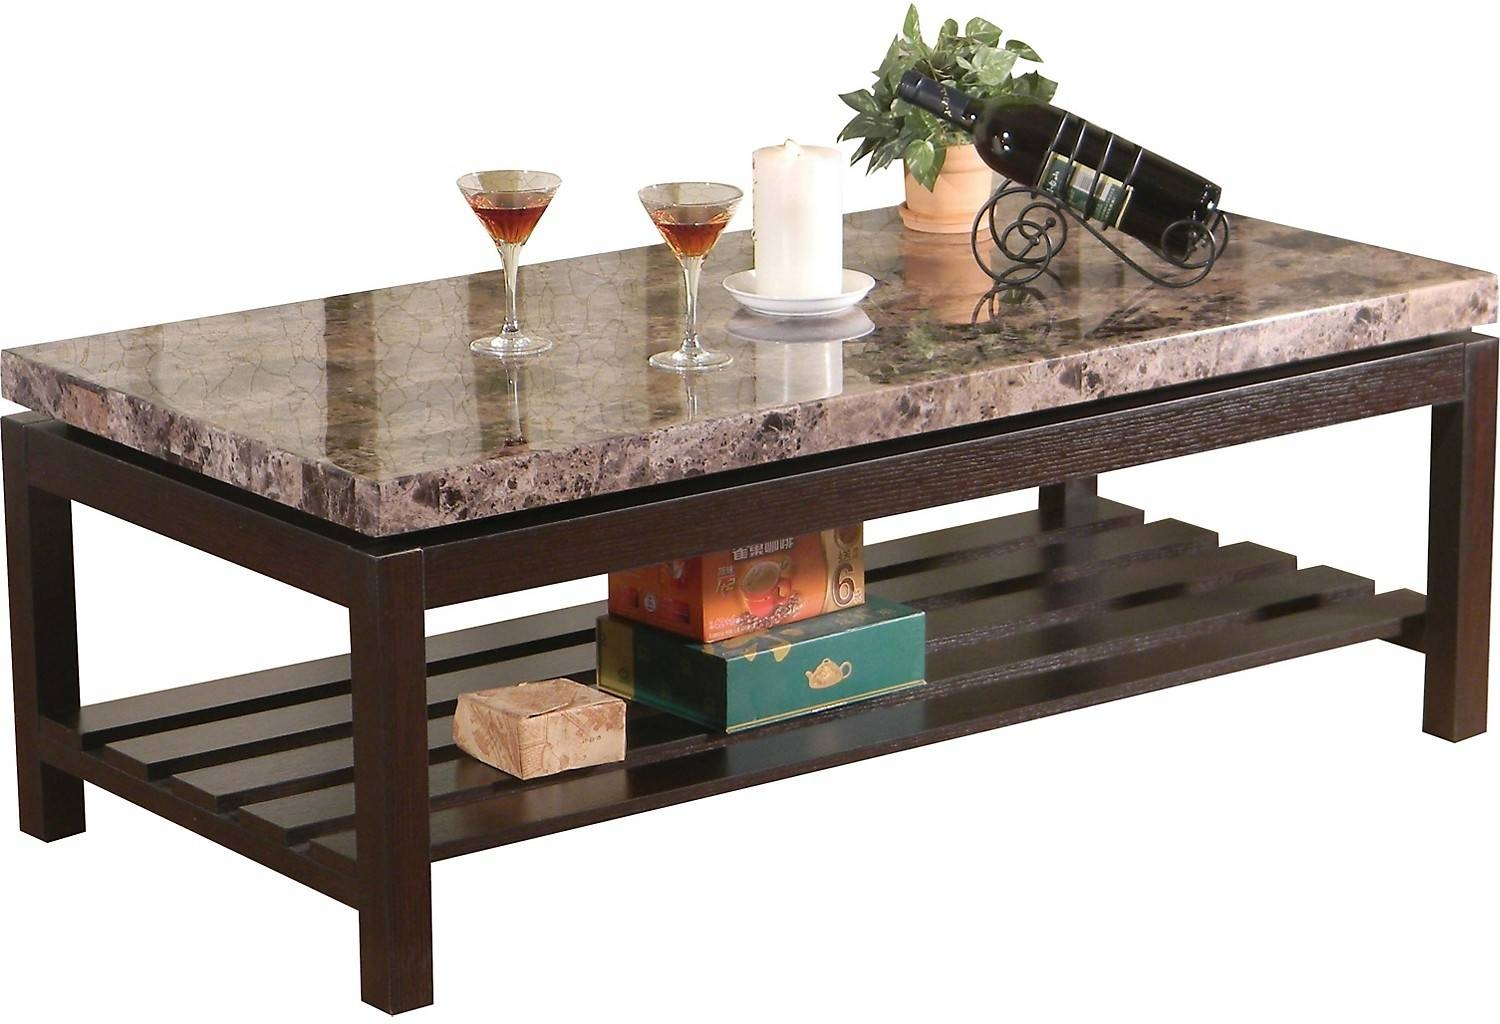 Verona Coffee Table | The Brick within Verona Coffee Tables (Image 26 of 30)